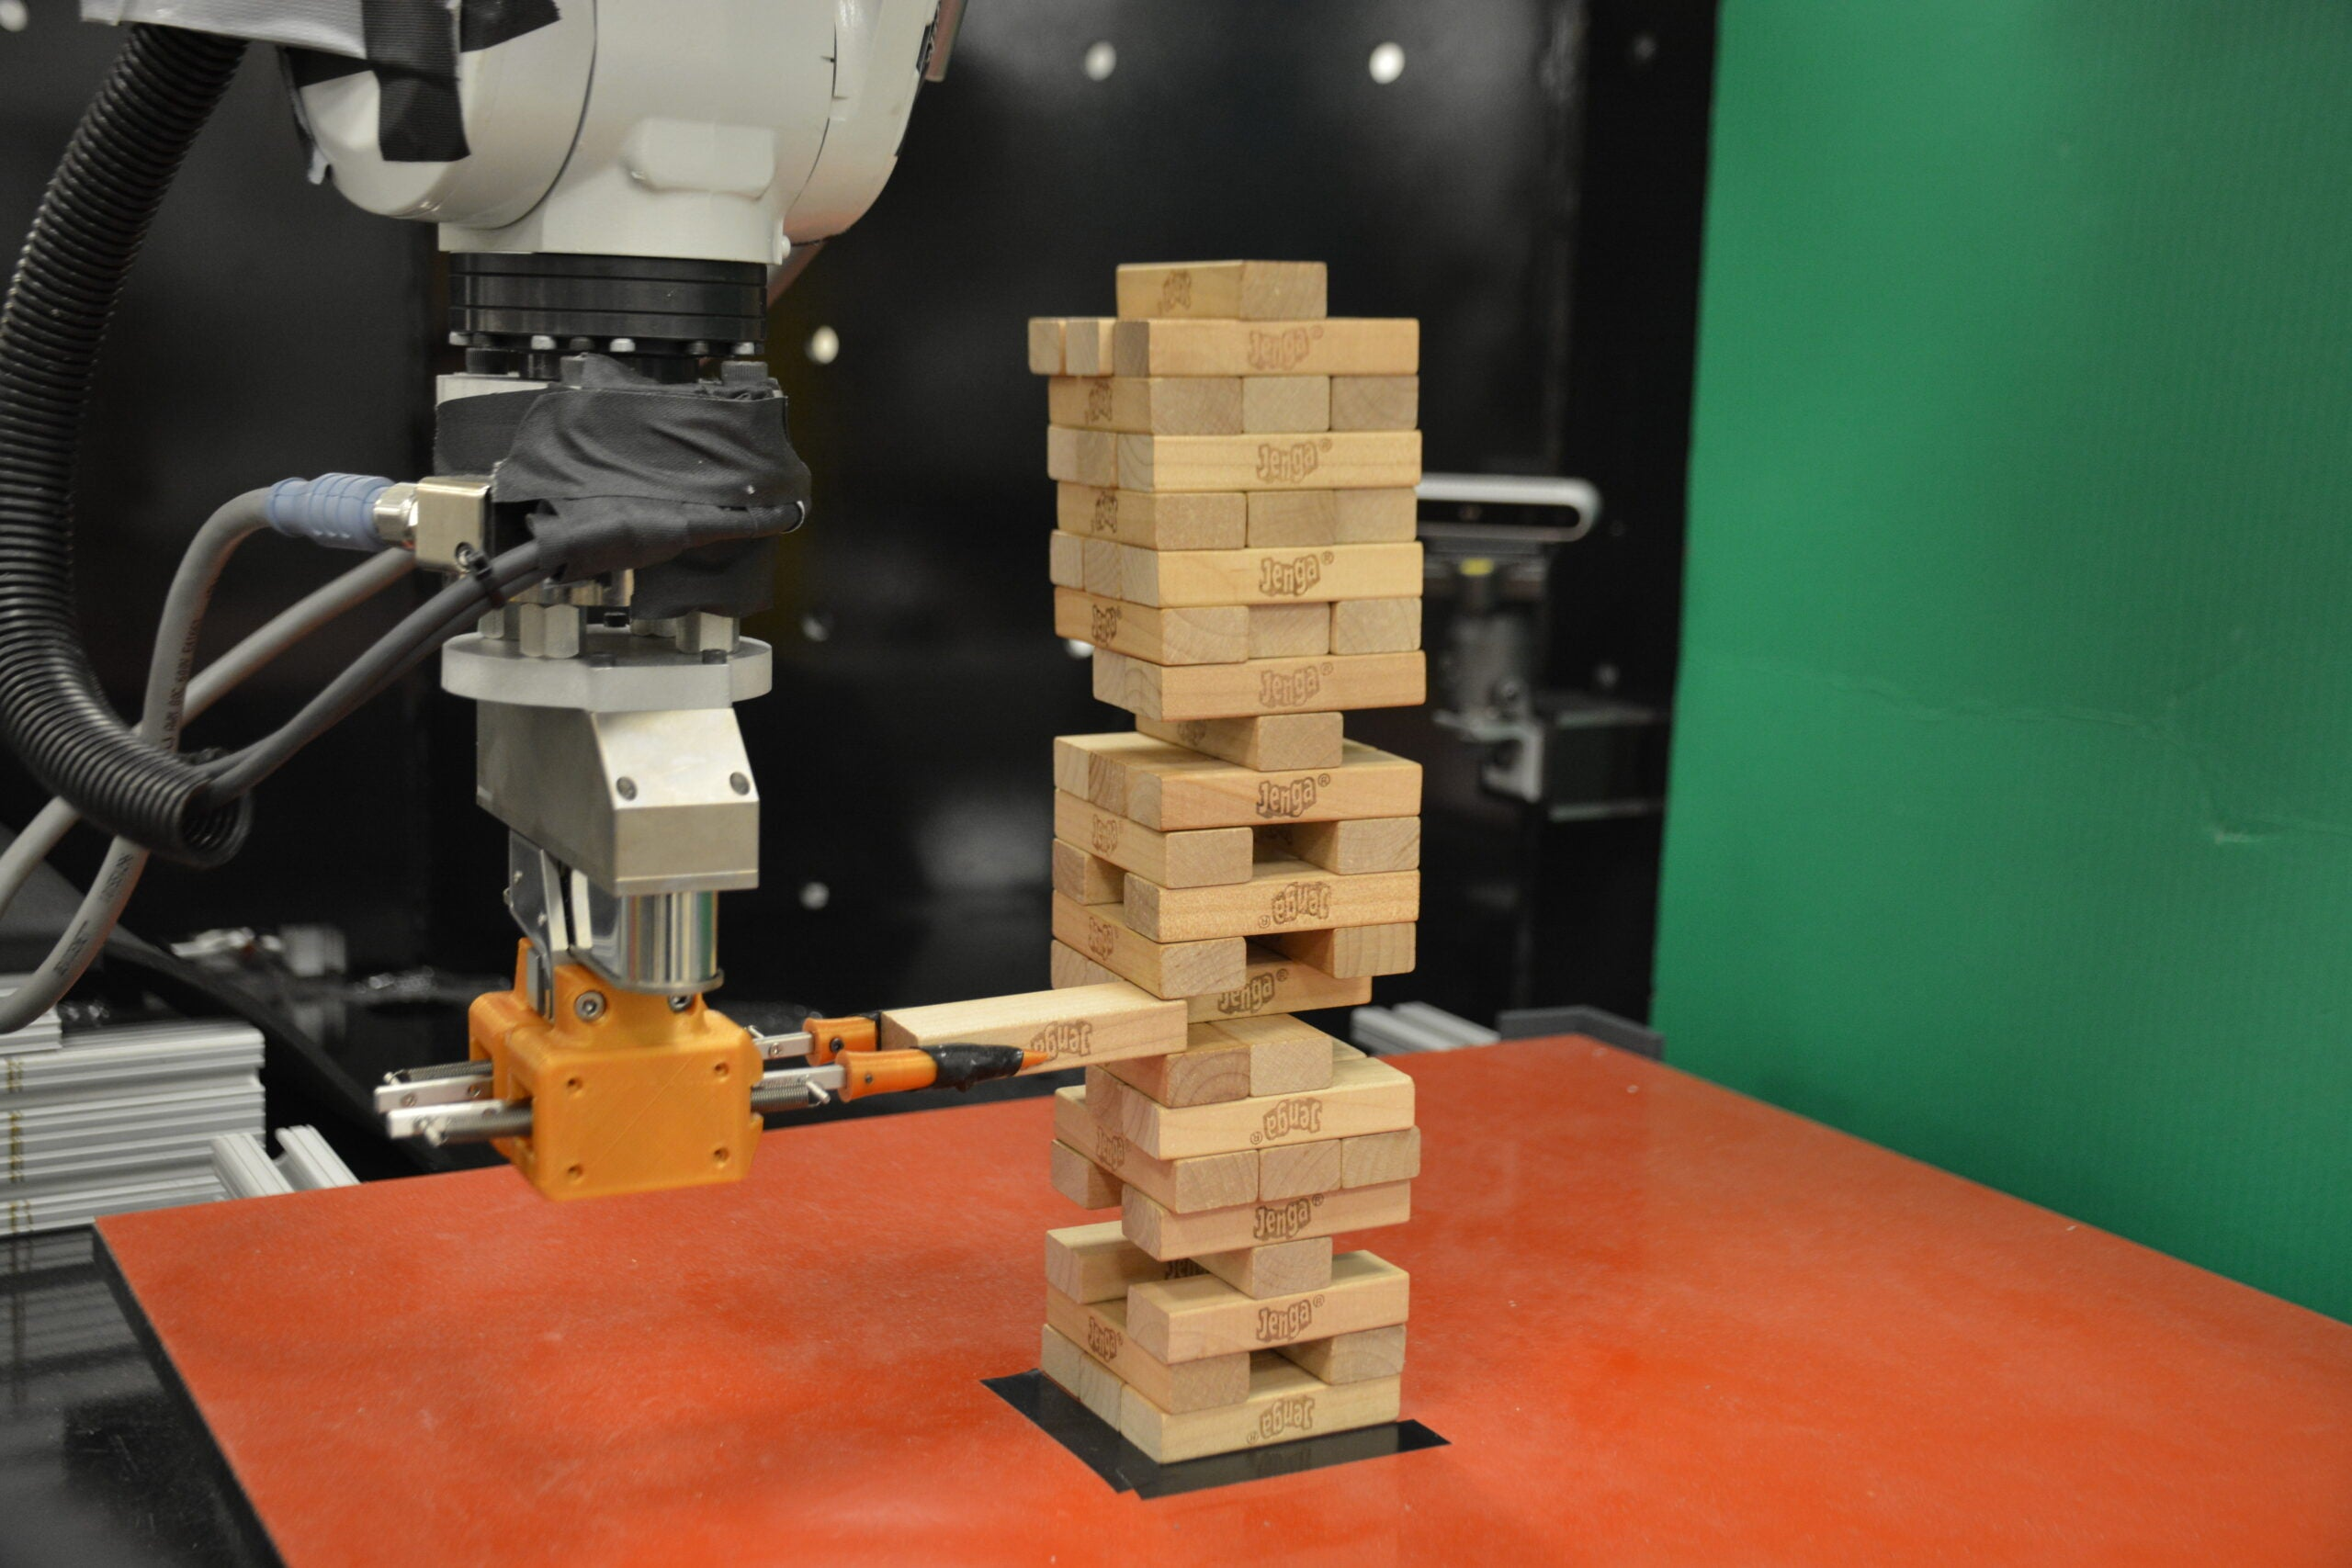 MIT is teaching a robot to beat you at Jenga